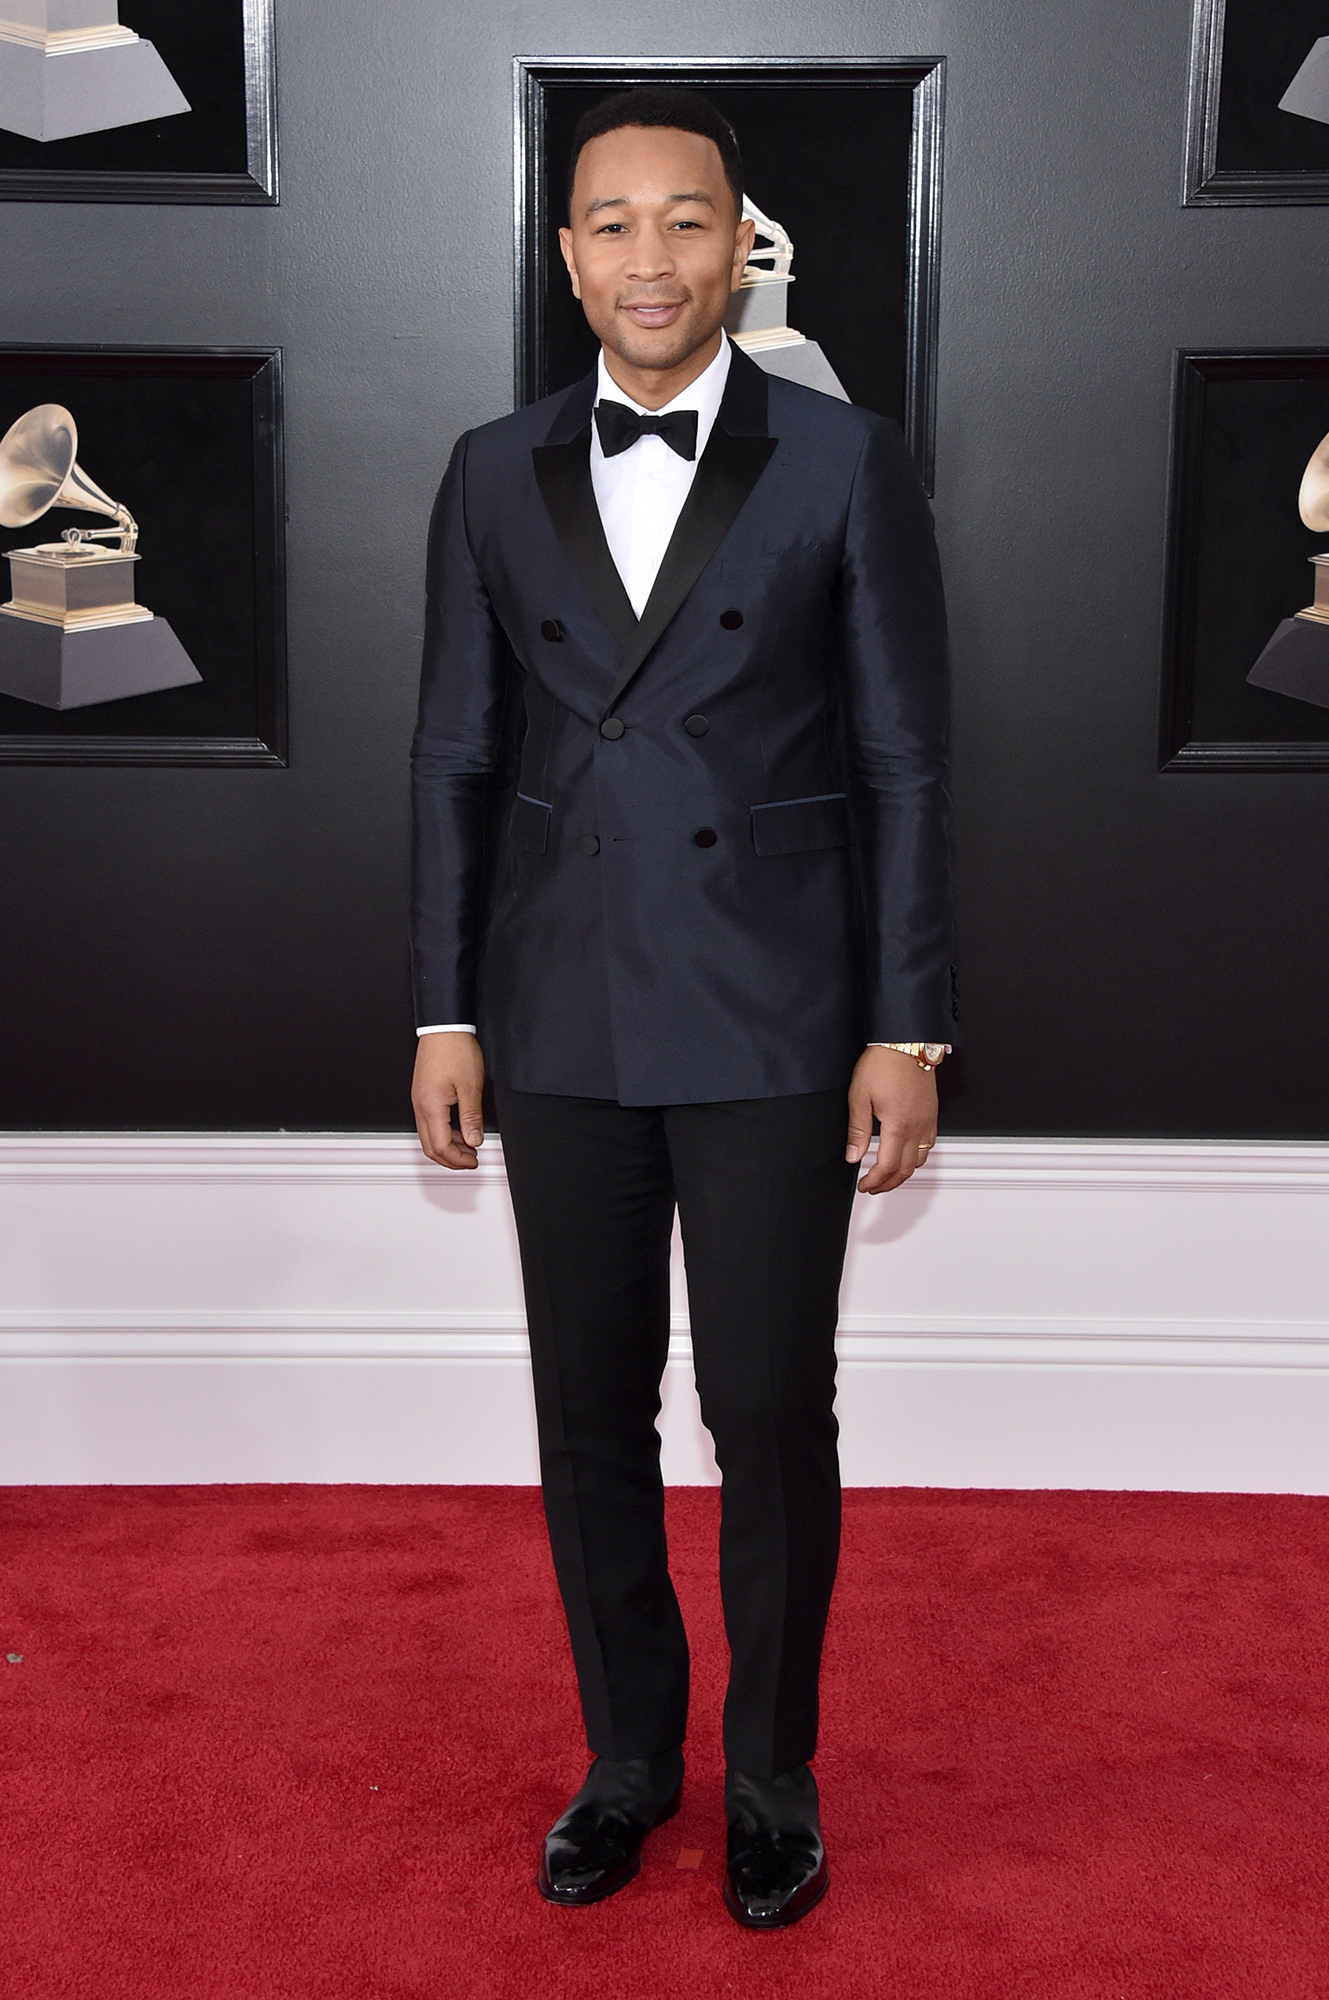 Hottest Guys in Suits - 2018 Edition - The newly crowned EGOT winner showed off his fab fashion sense in a black double-breasted Burberry tux at the Grammys.